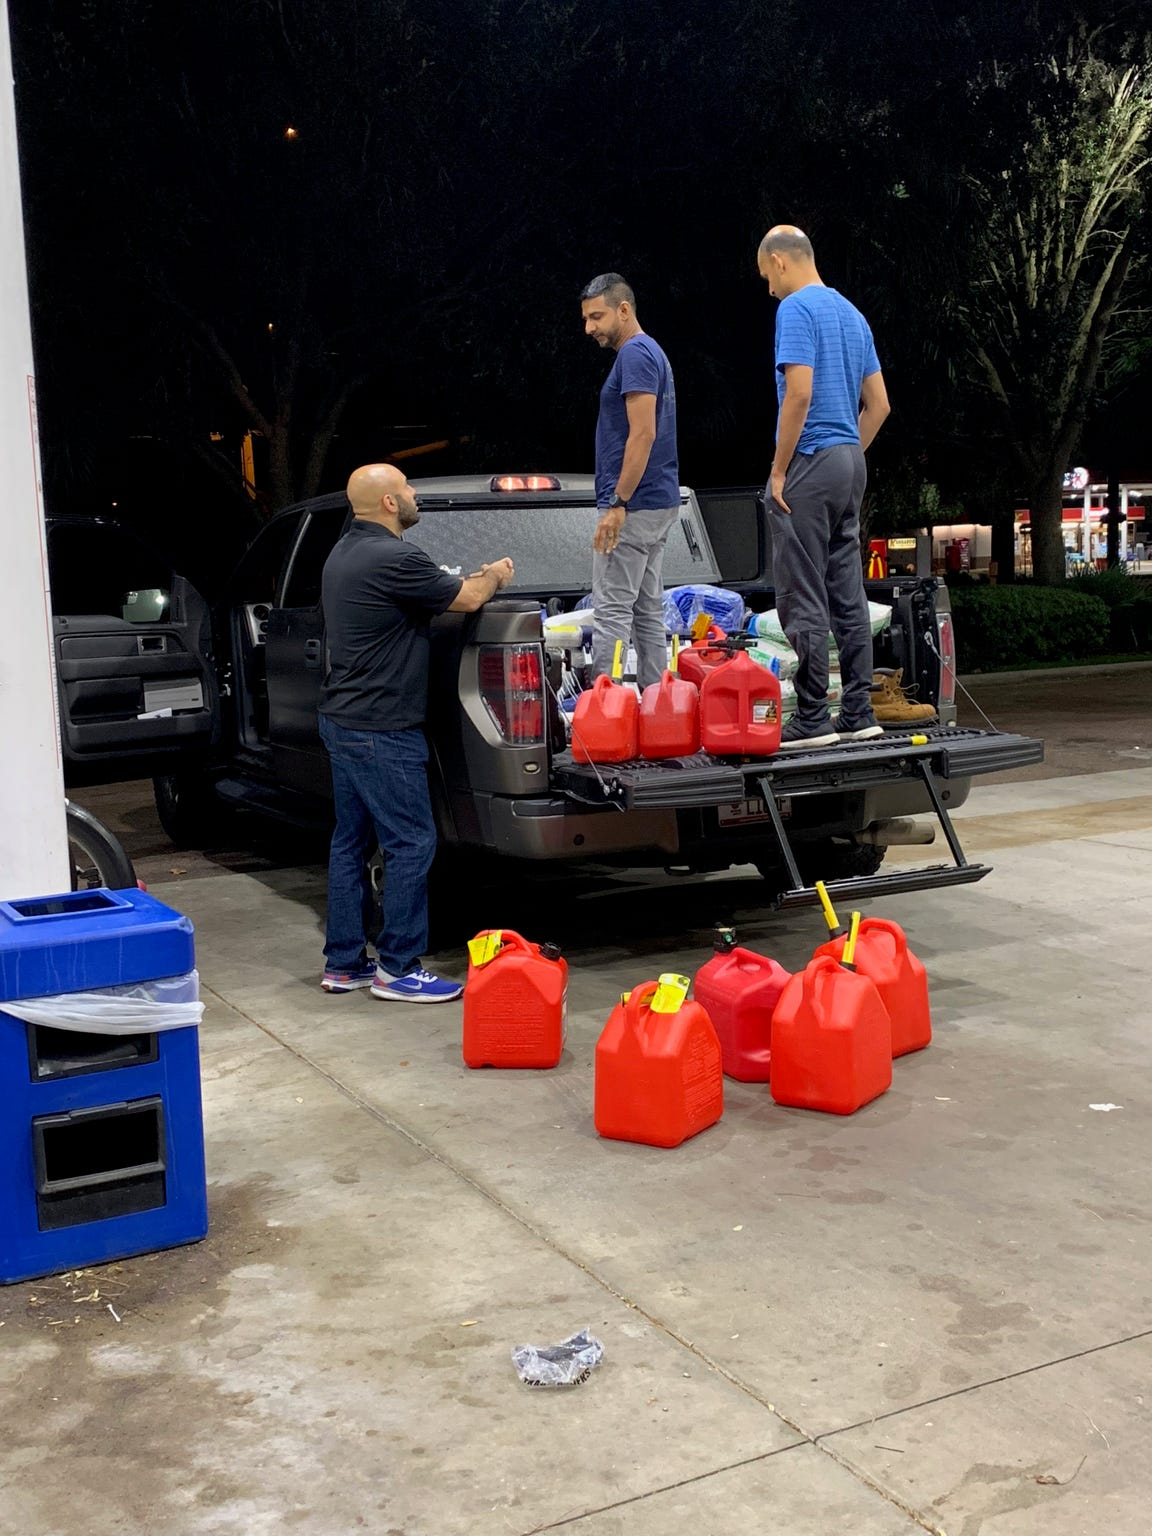 Mohammad Sherif, far left, prepares to load fuel containers during a relief trip to Panama City.